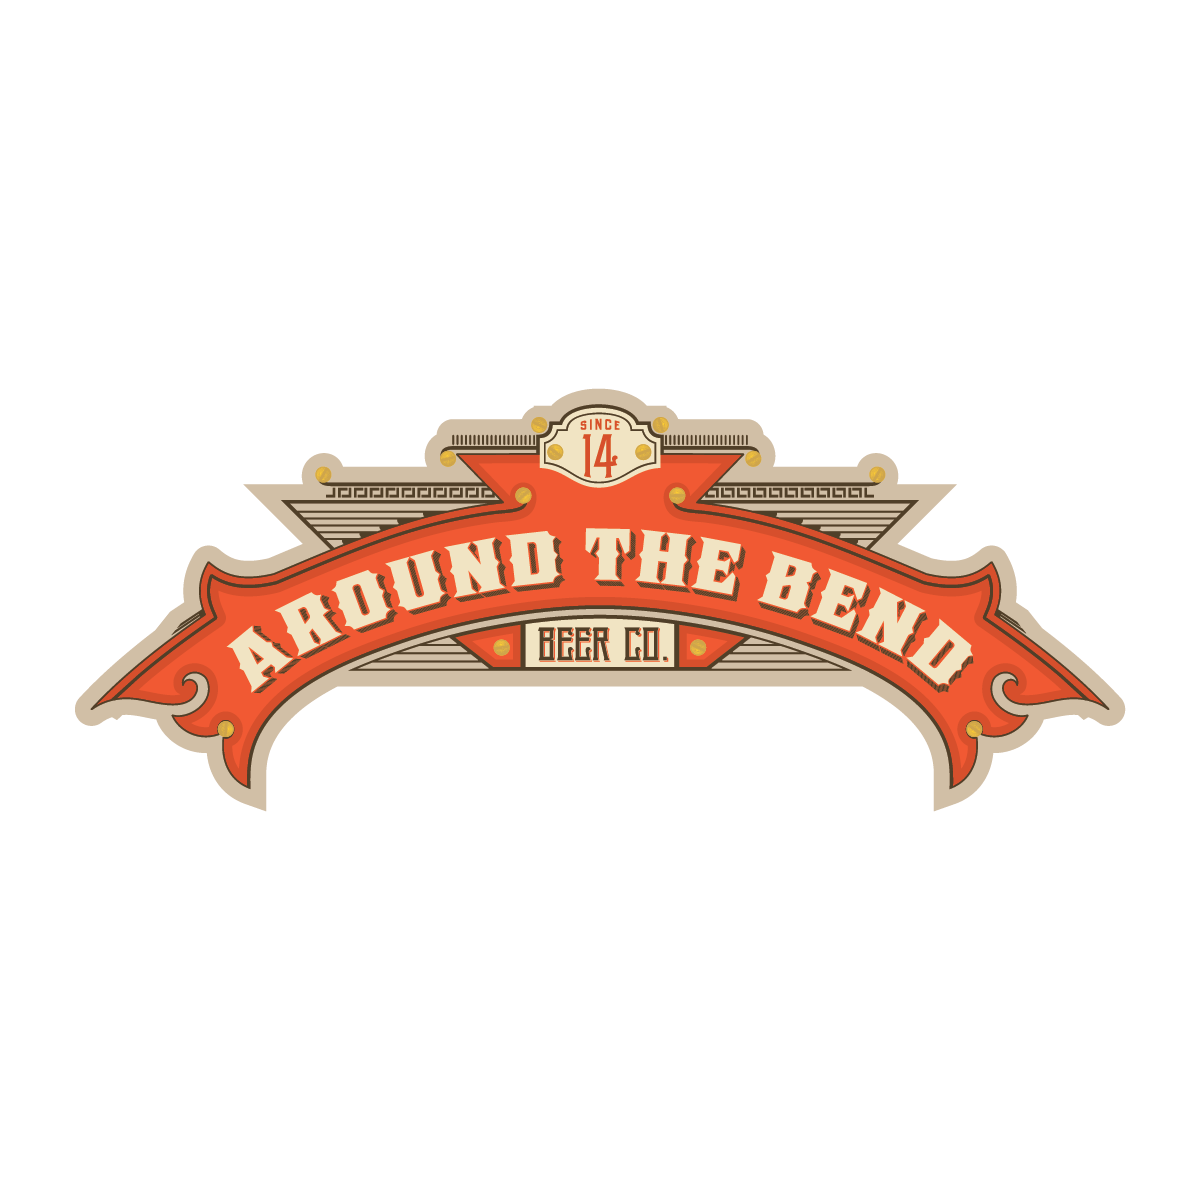 Brewery Showcase | Around the Bend Beer Co.